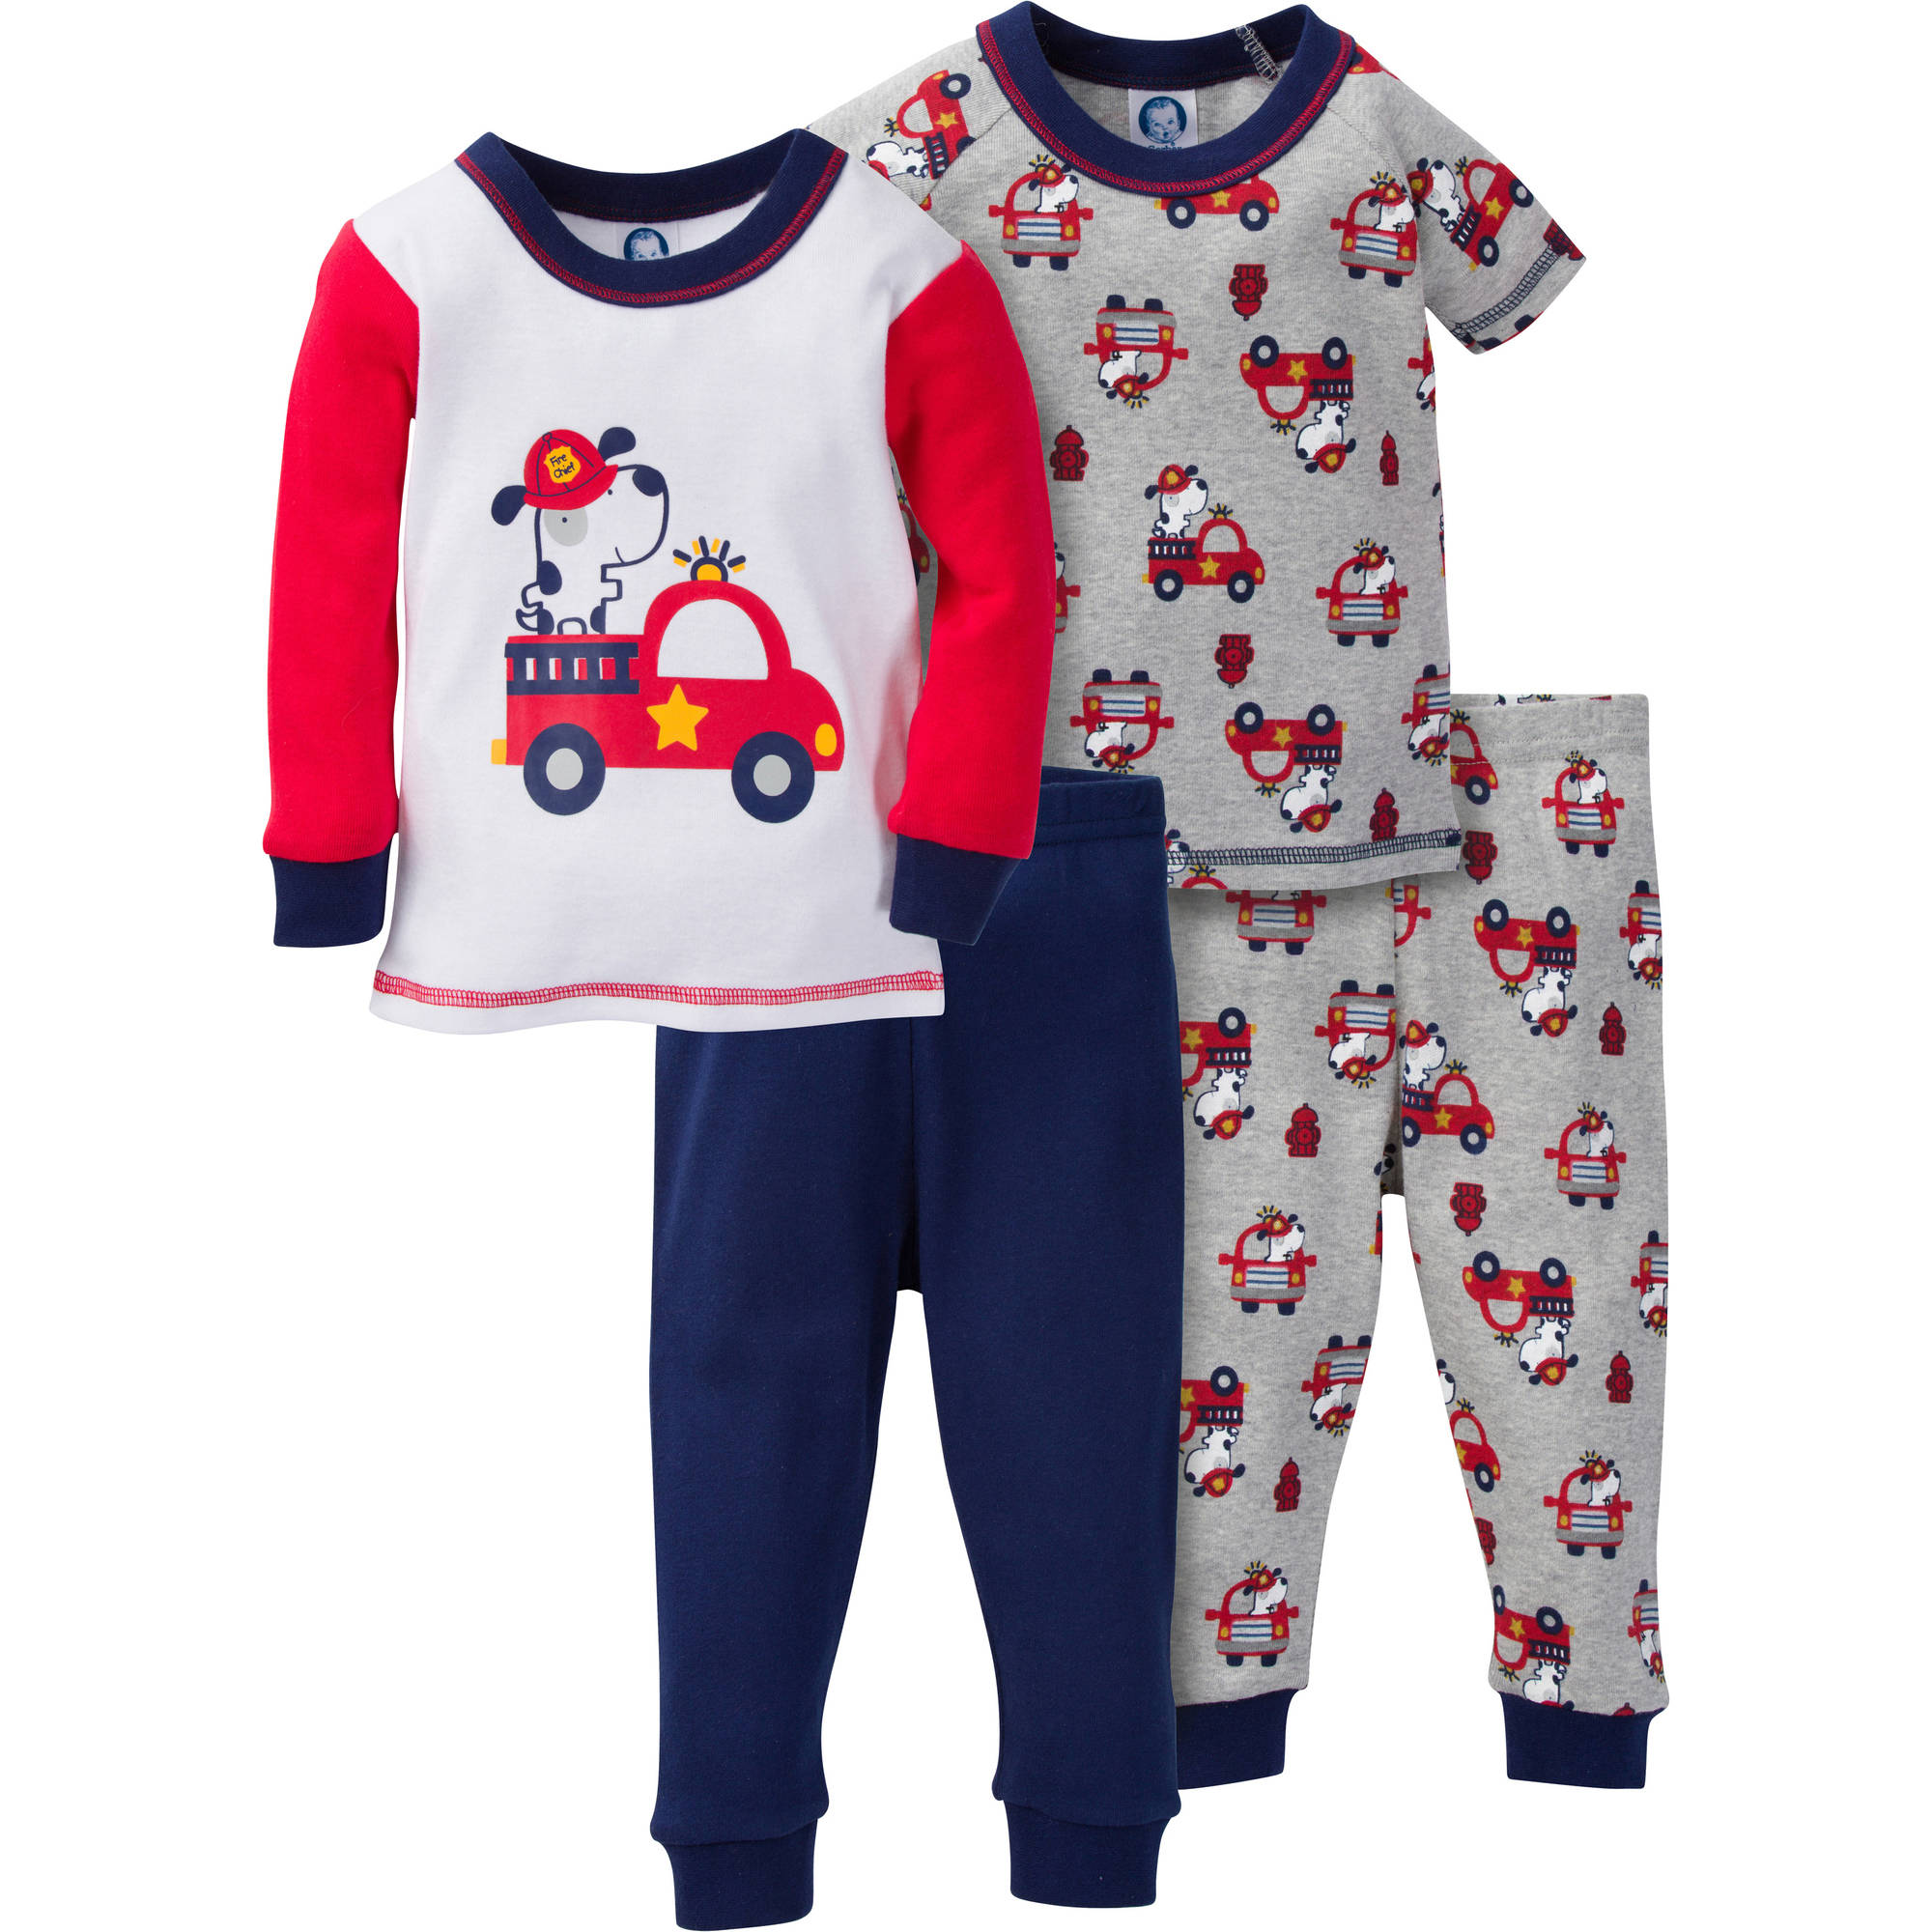 Gerber Baby Toddler Boy Mix N' Match Snug Fit Cotton Pajamas, 4pc Set